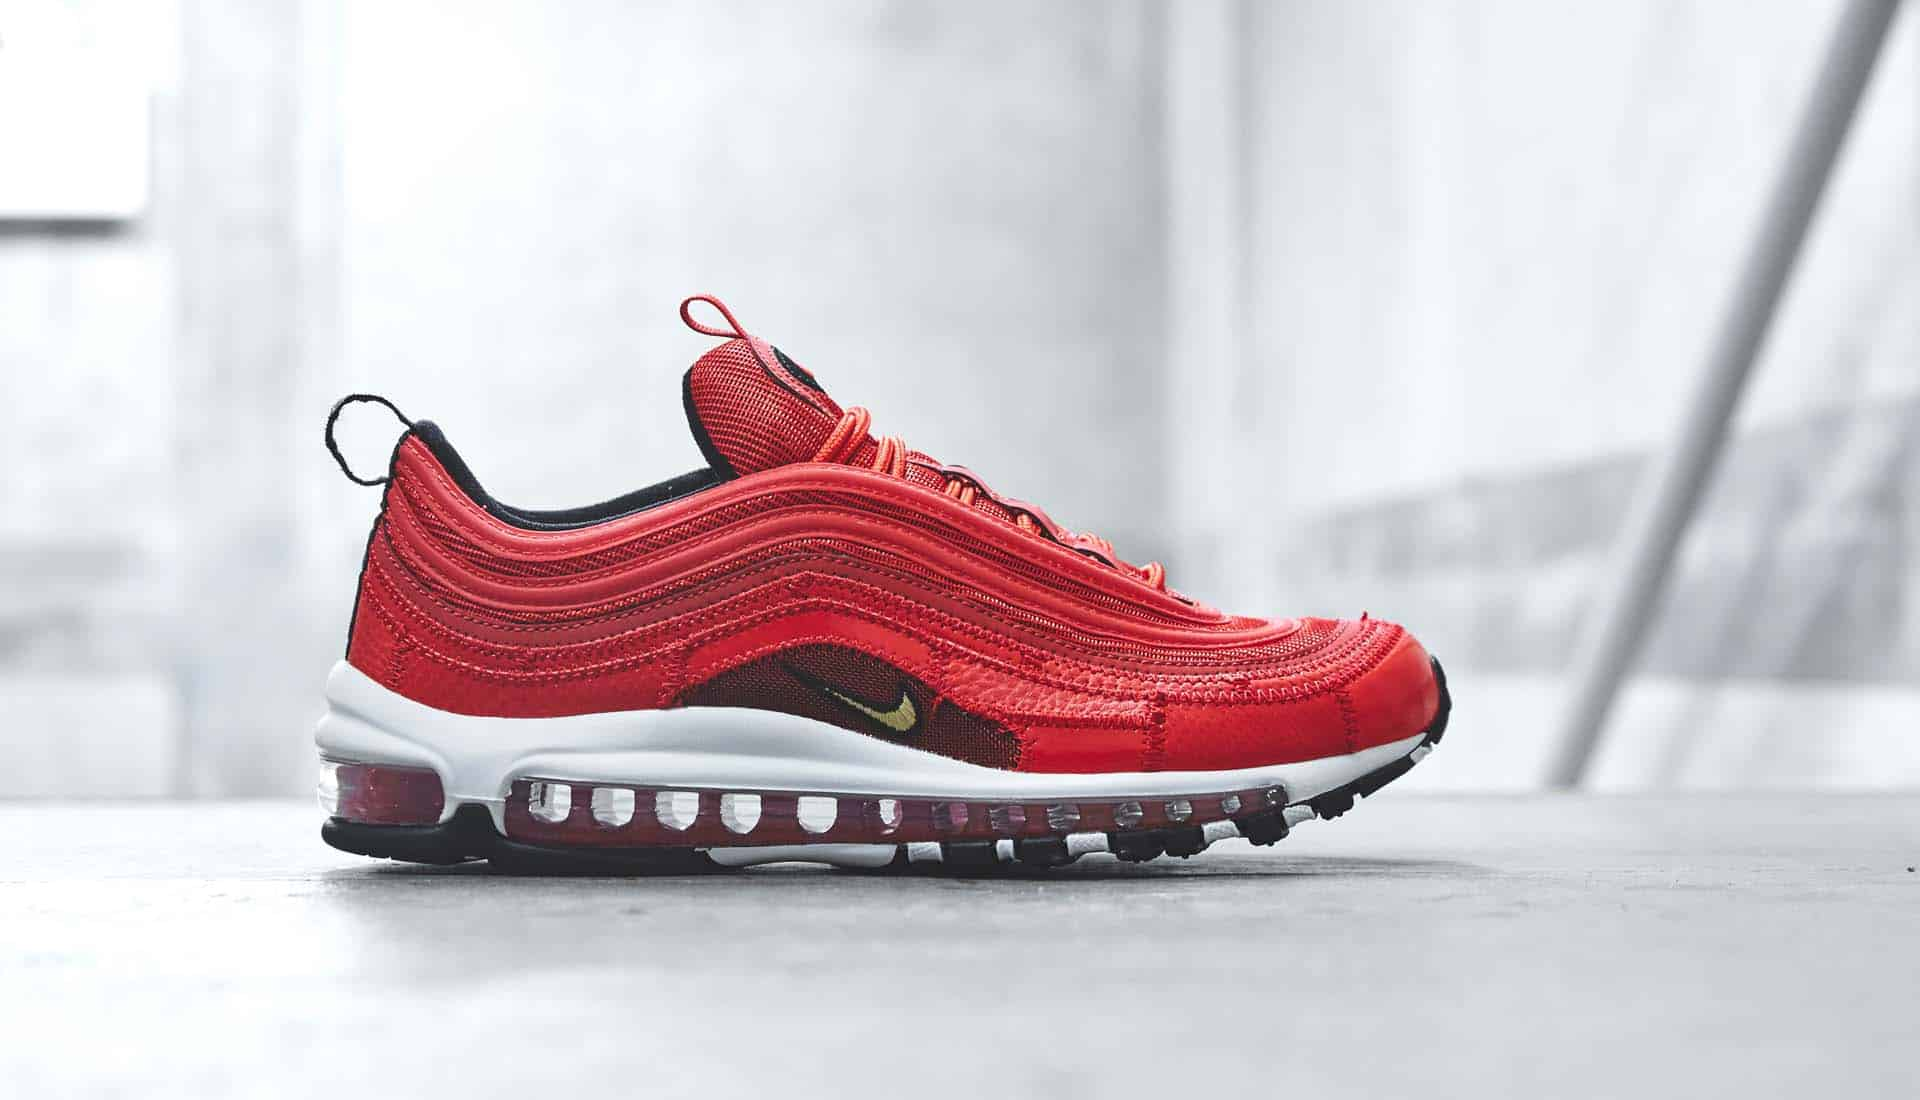 sneakers-Nike-Air-Max-97-CR7-University-Red-img1